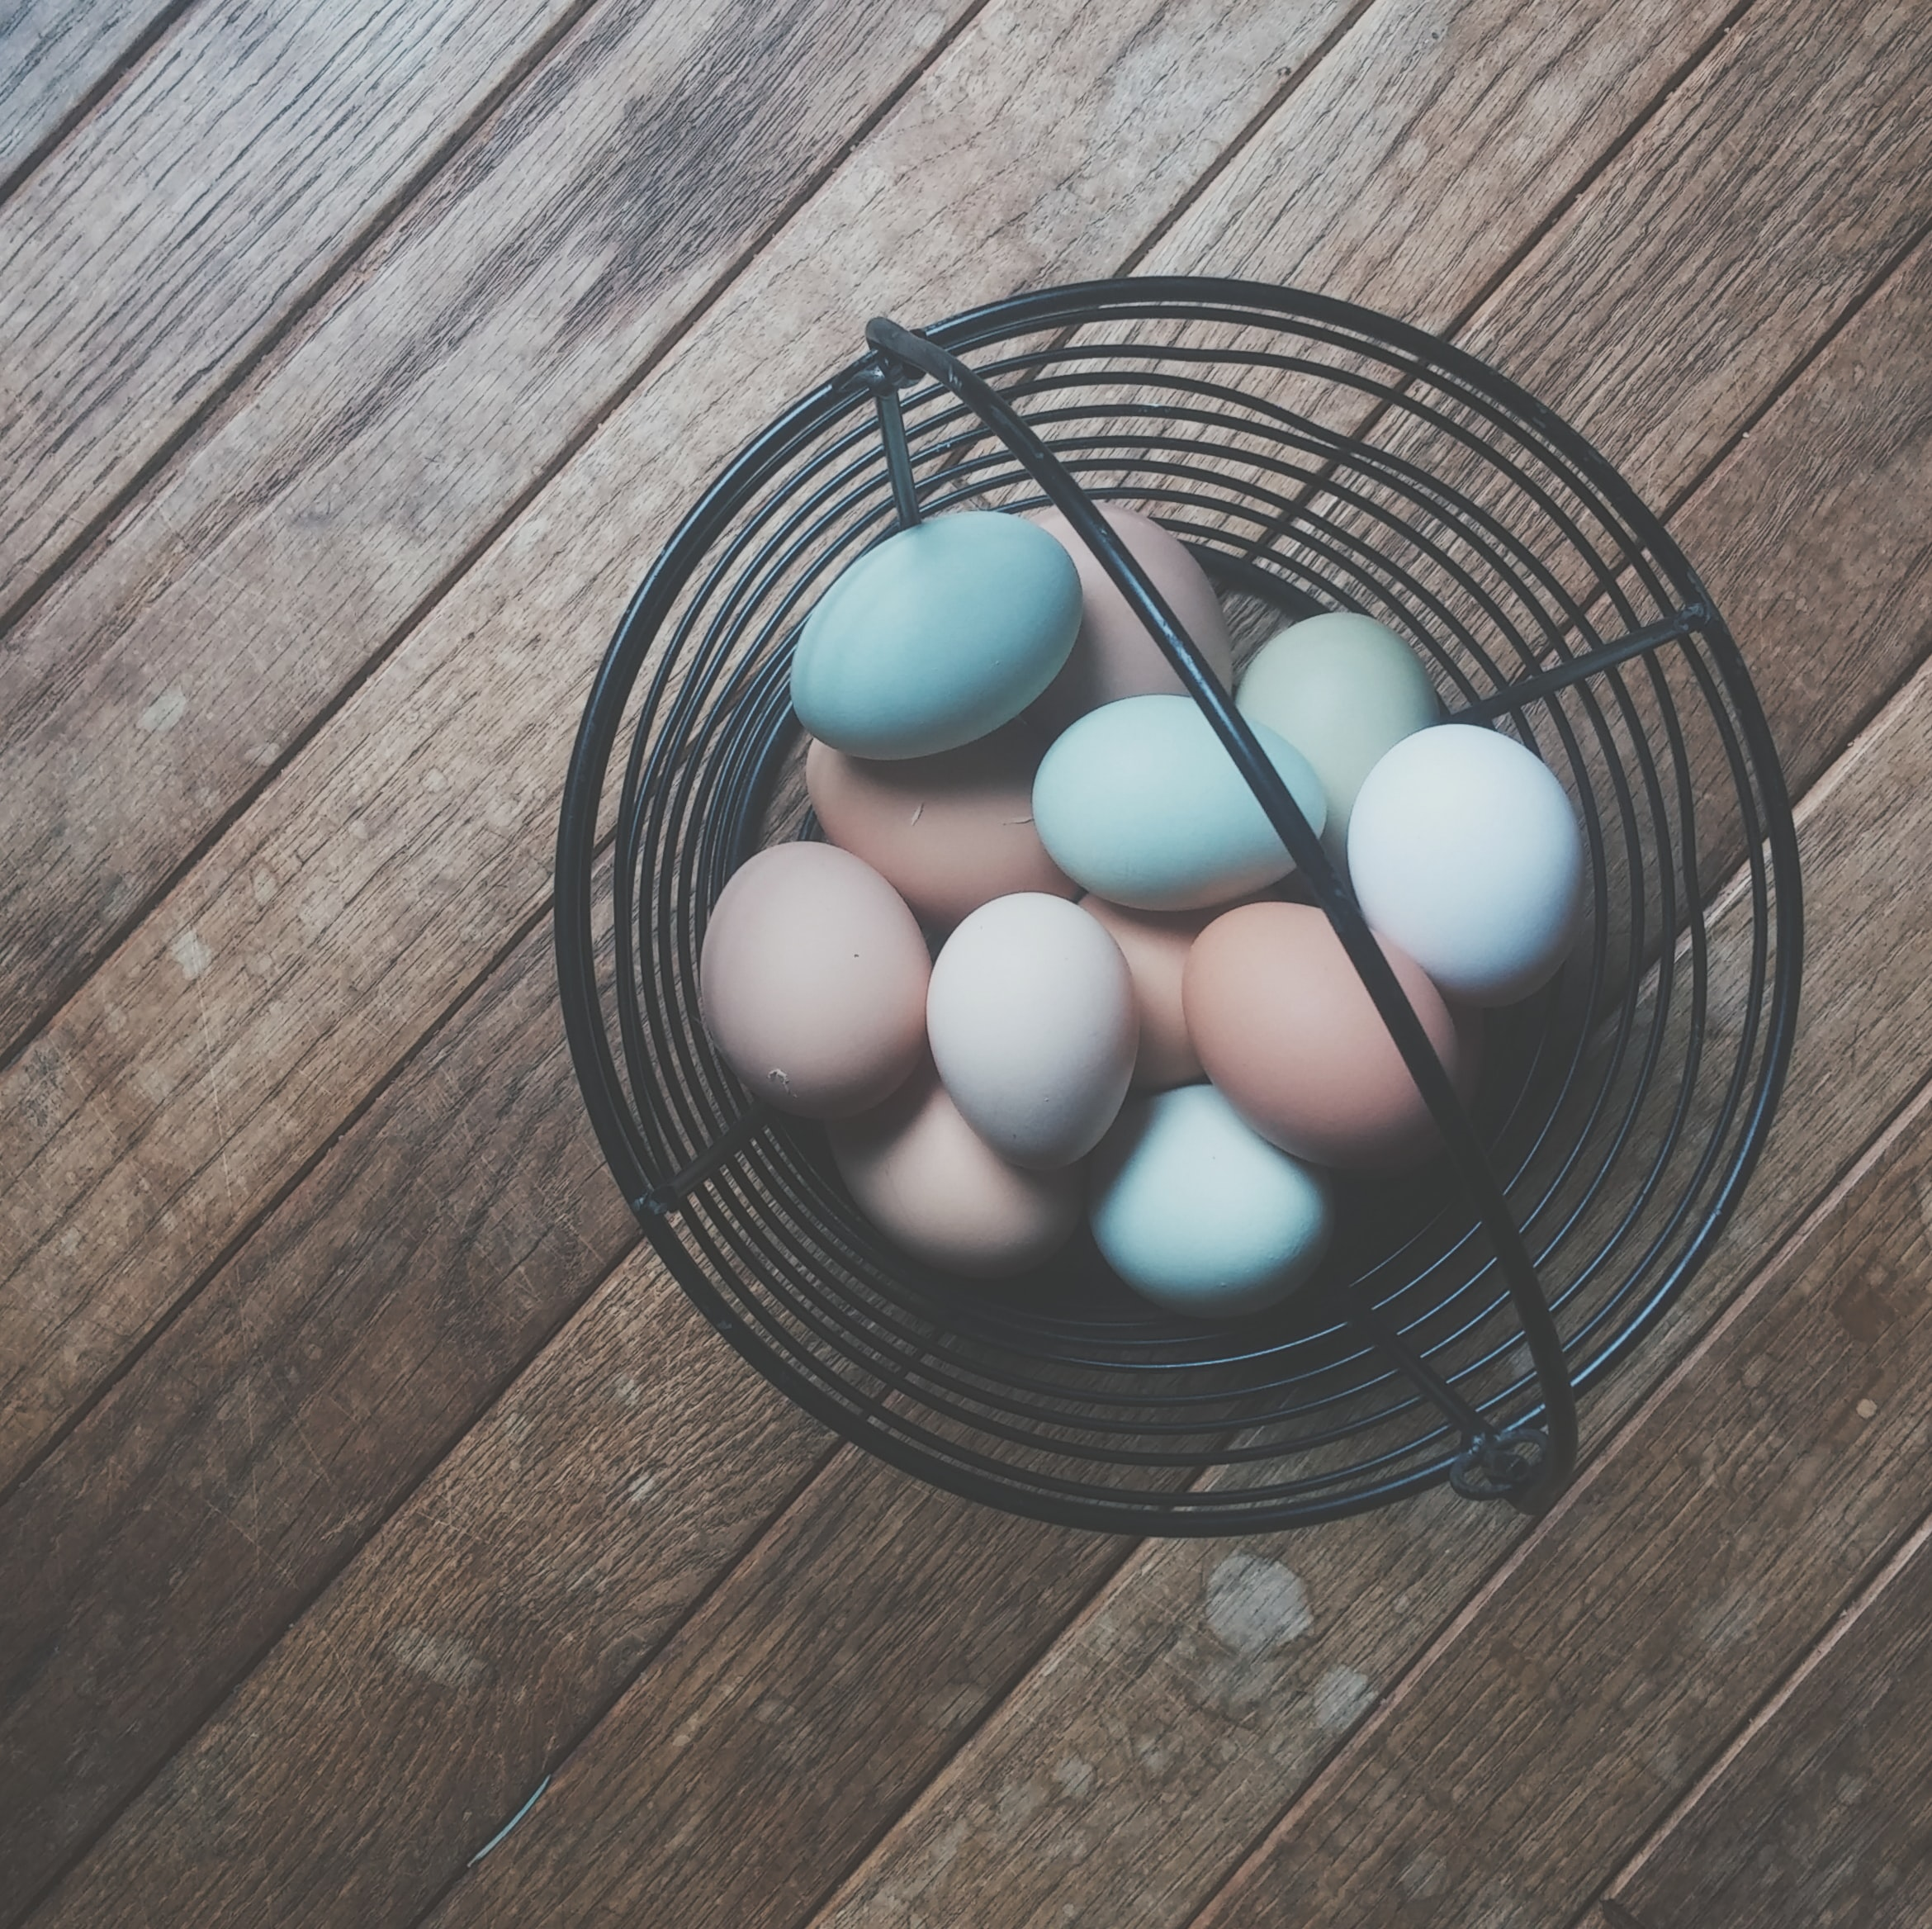 Eggs of different colors are placed in a basket on a wooden panel.